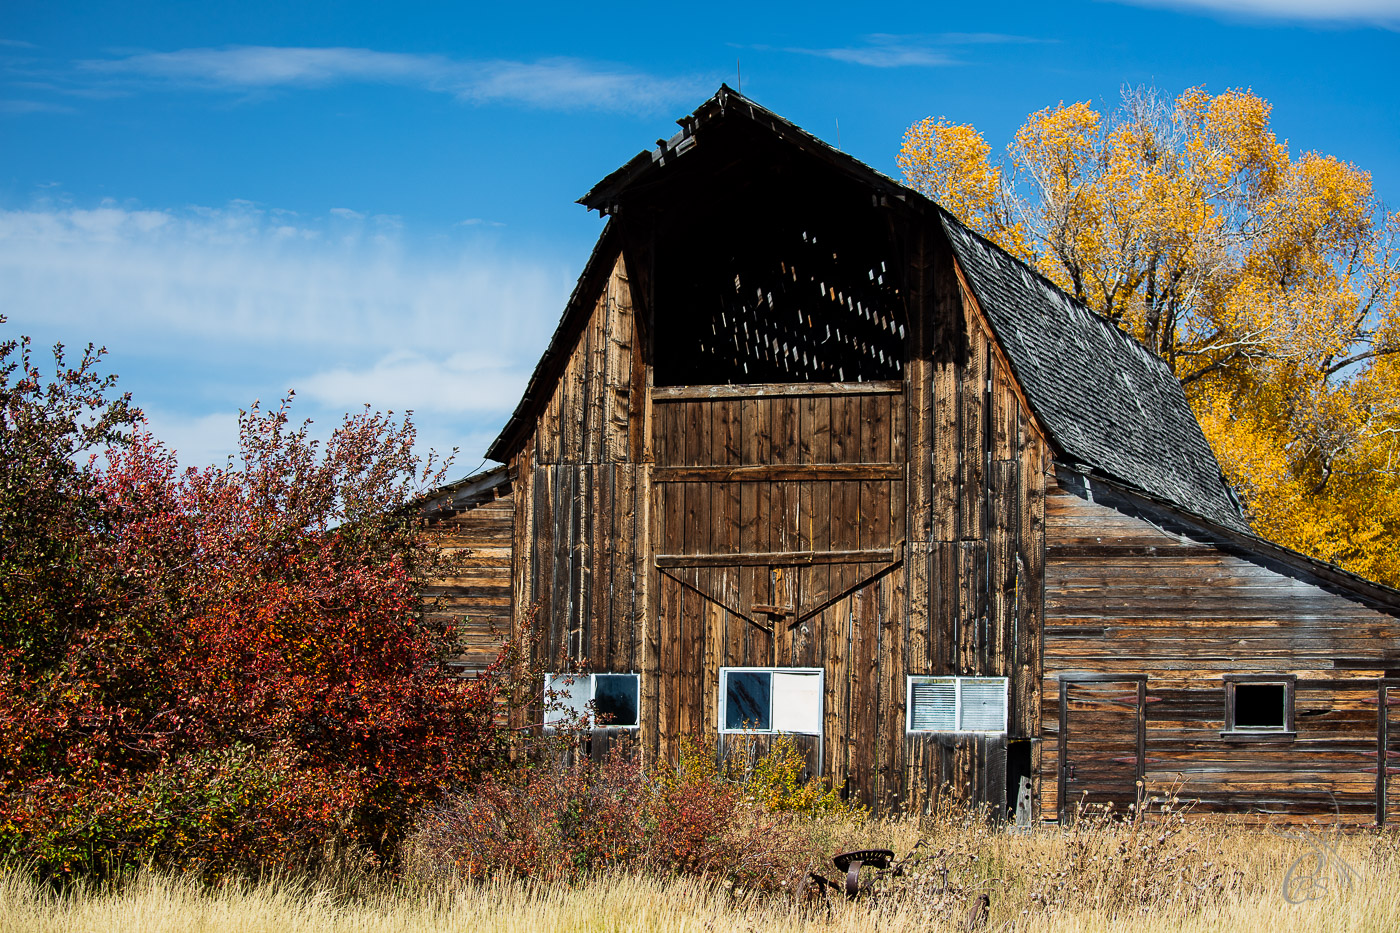 Wyoming: Rustic Barn